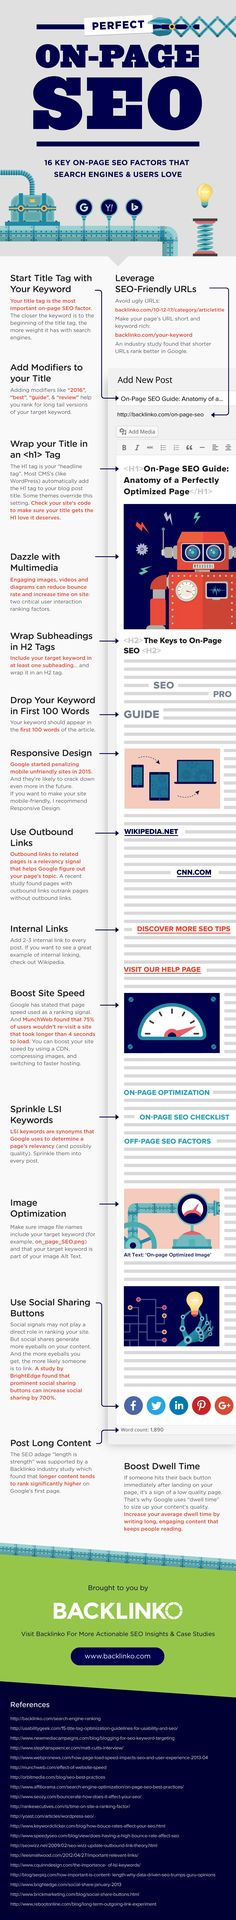 On-Page SEO: A Checklist to Bring in More Search Engine Traffic